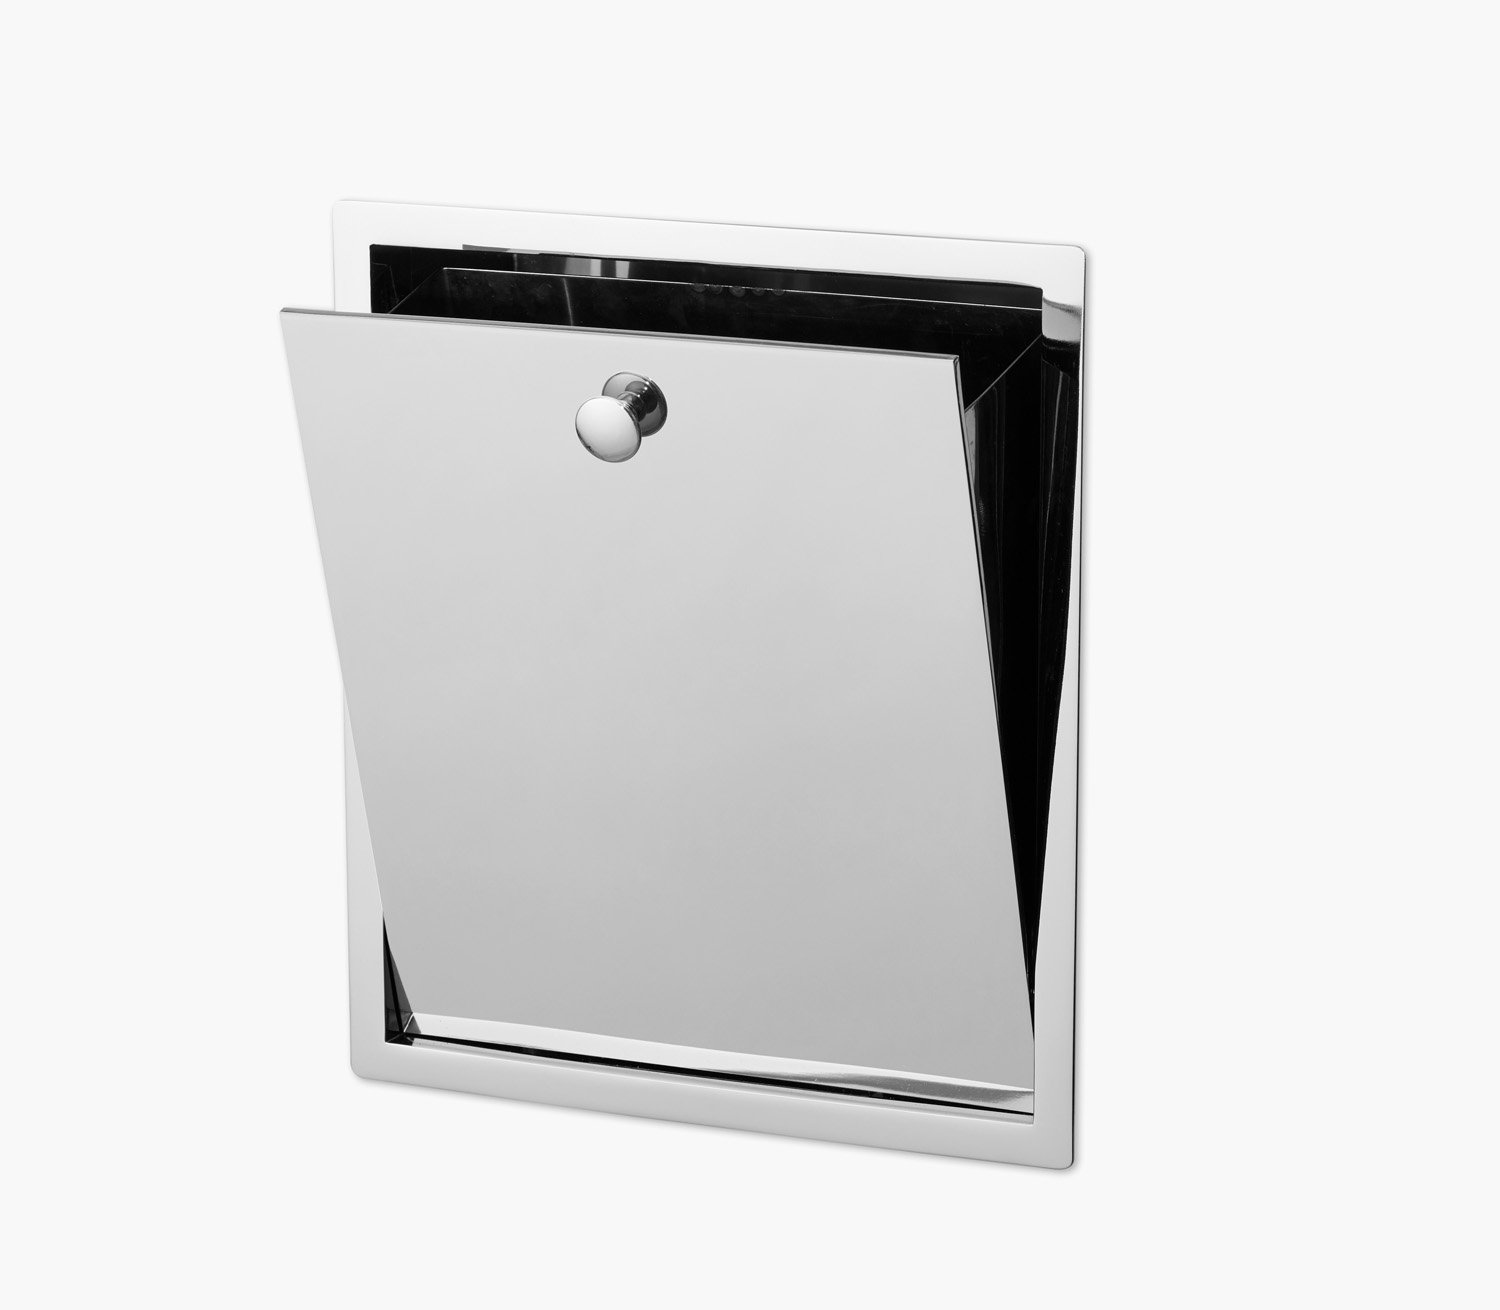 Wall Recessed Waste Bin Product Image 2